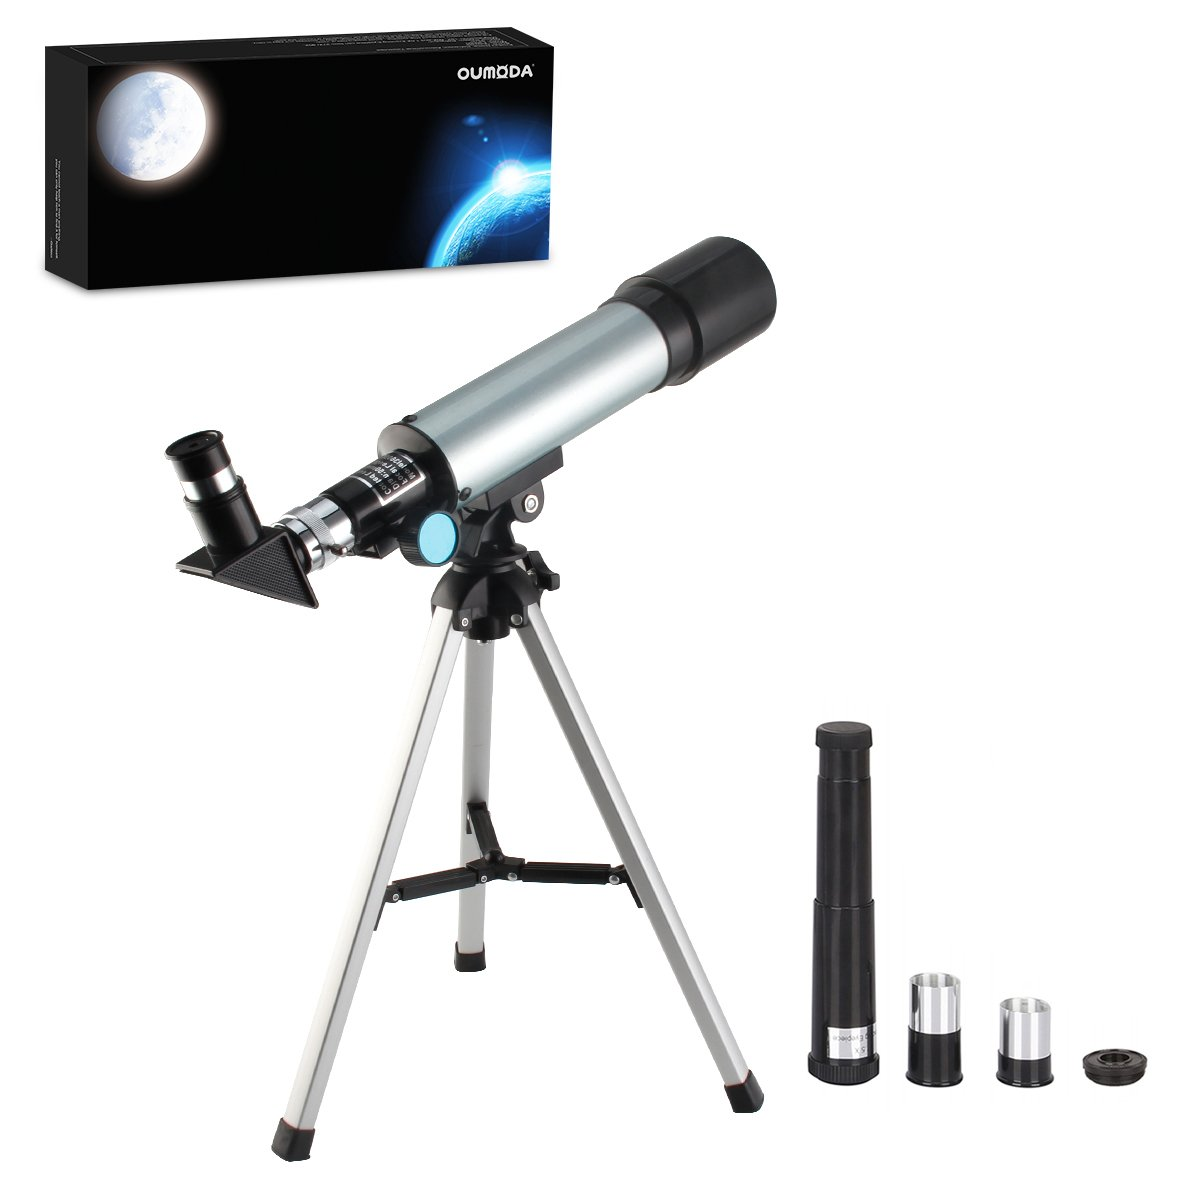 Oumoda Telescope, Travel Scope, 90 X Refractor Telescope, Astronomy Telescope Tabletop Nature Exploration Gifts Toys for Kids, Adults Sky Star Gazing, Birds Watching by Oumoda